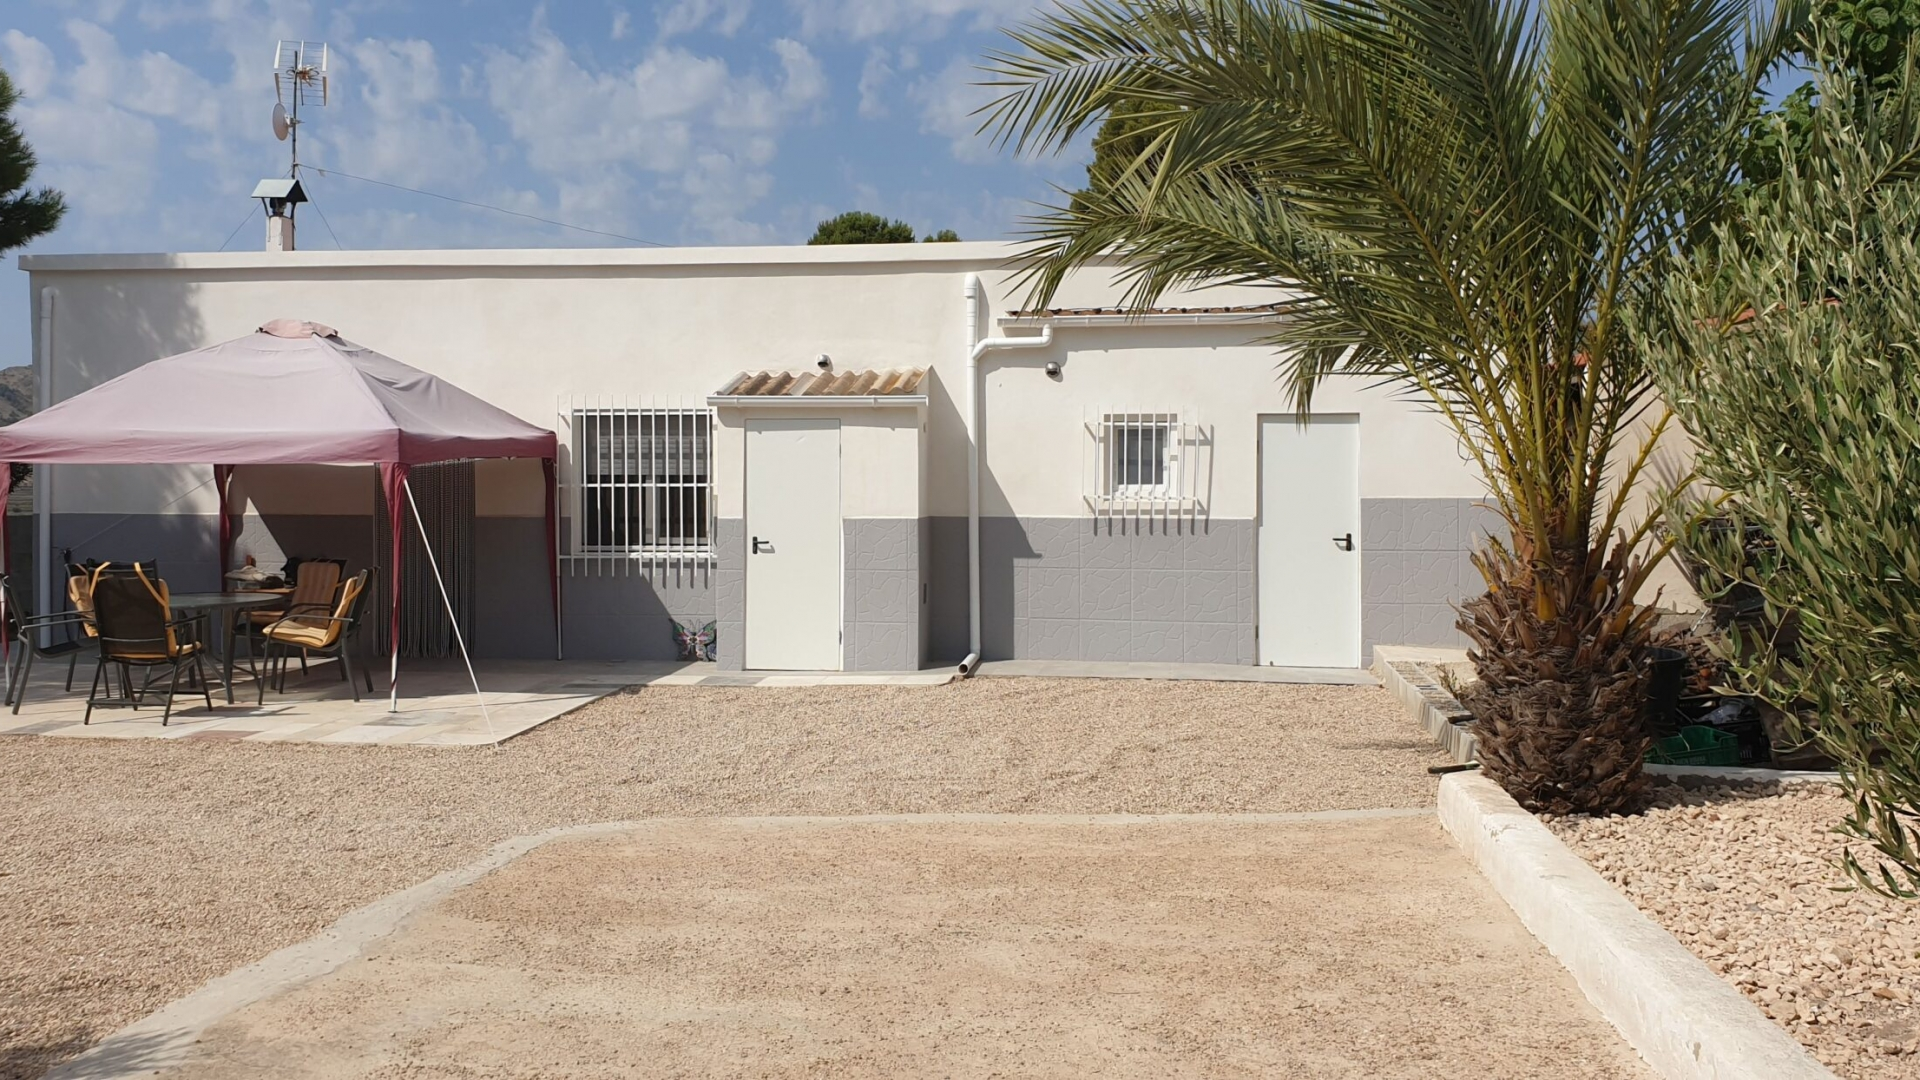 For sale: 3 bedroom house / villa in La Romana, Costa Blanca